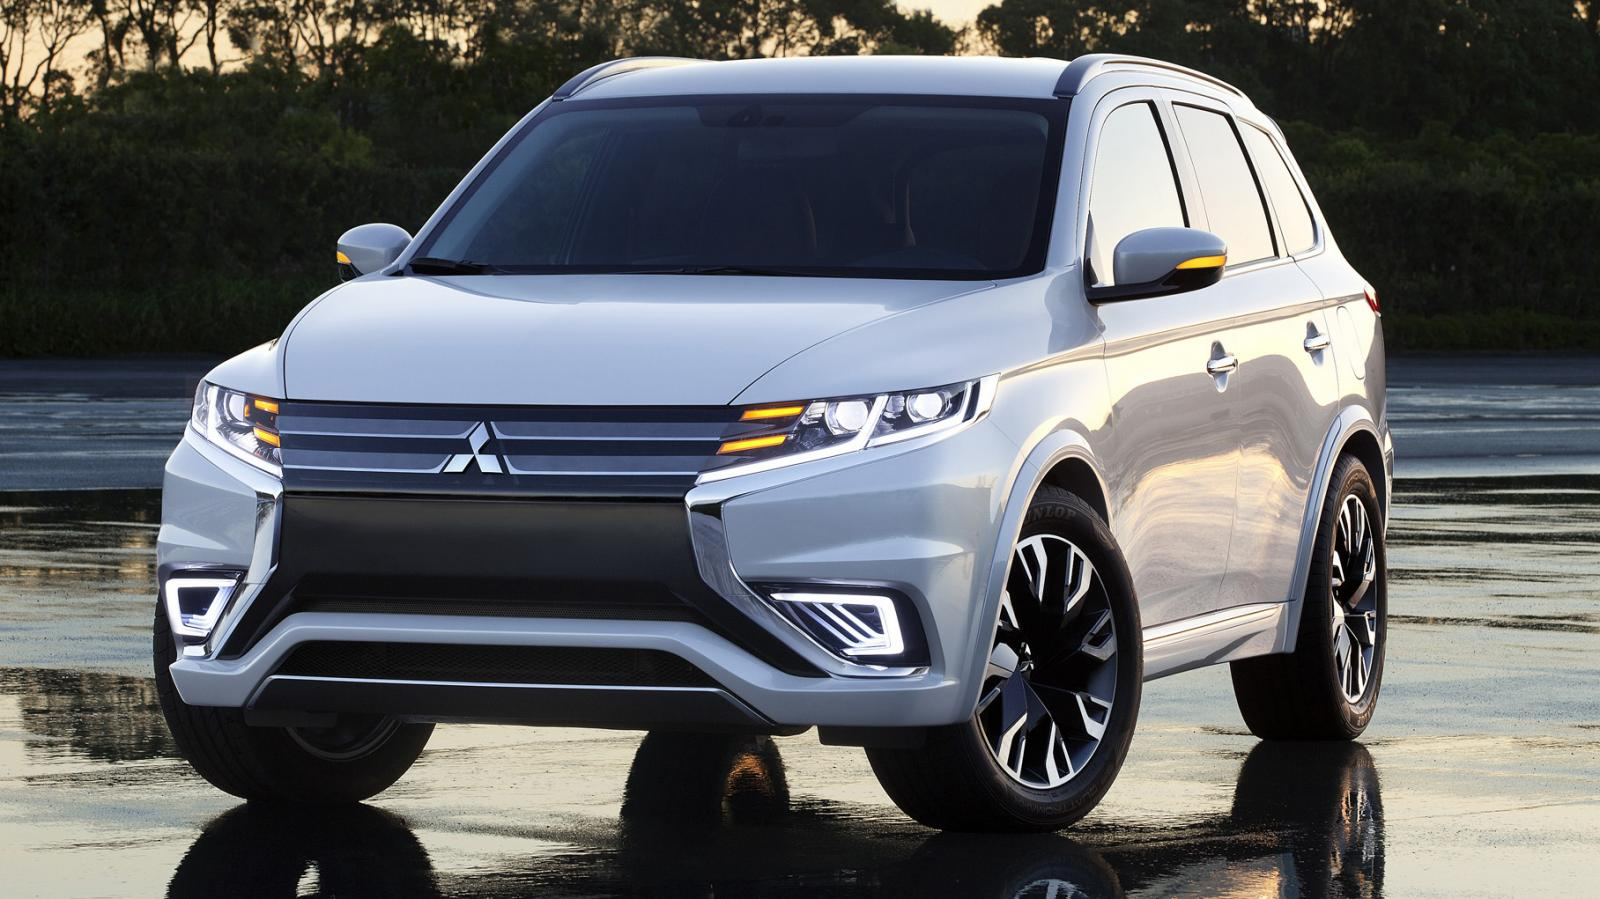 A PHEV the U.S. does not get, the Mitsubishi Outlander ranks as third  best seller this year behind Leaf and Model S.